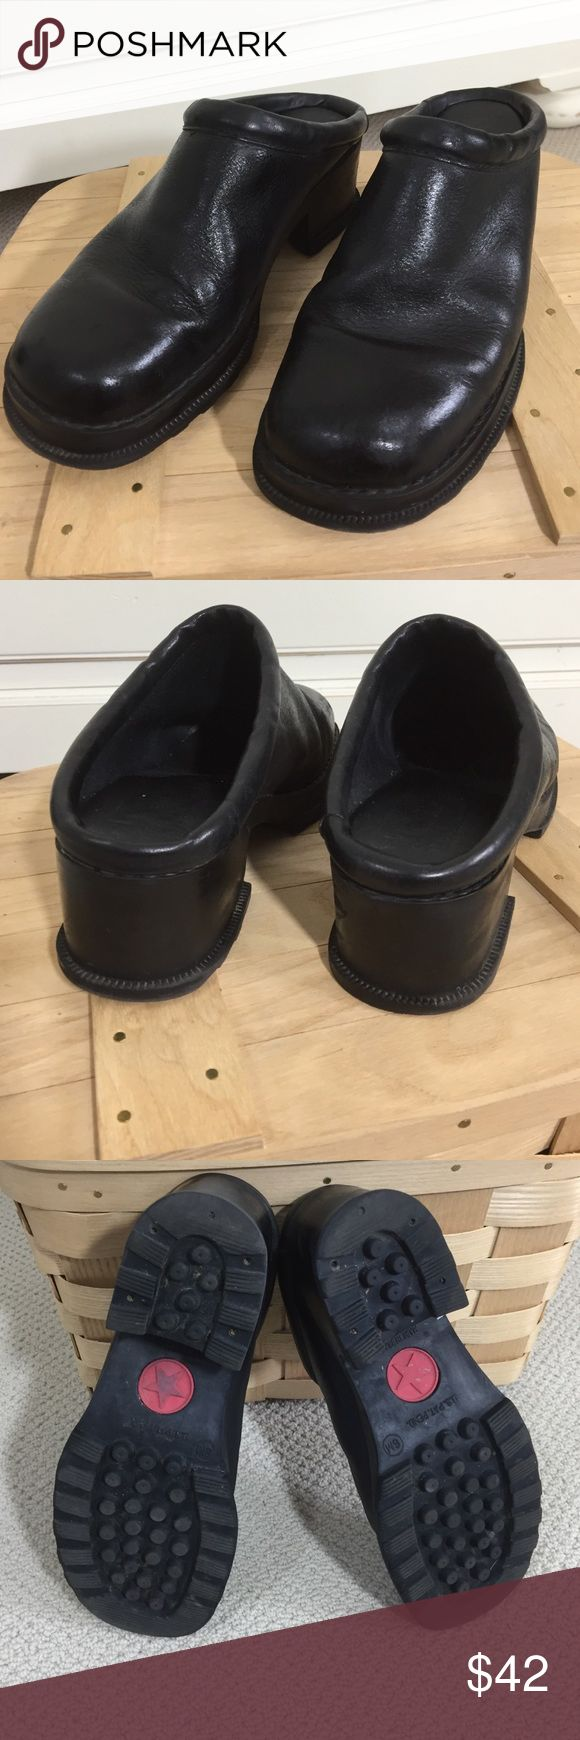 No Restrictions leather mule clog Think 90s. Super comfy. Black leather with lug type sole. Really good used condition. Great for summer festivals!  Dresses, jeans, shorts. no restrictions Shoes Mules & Clogs